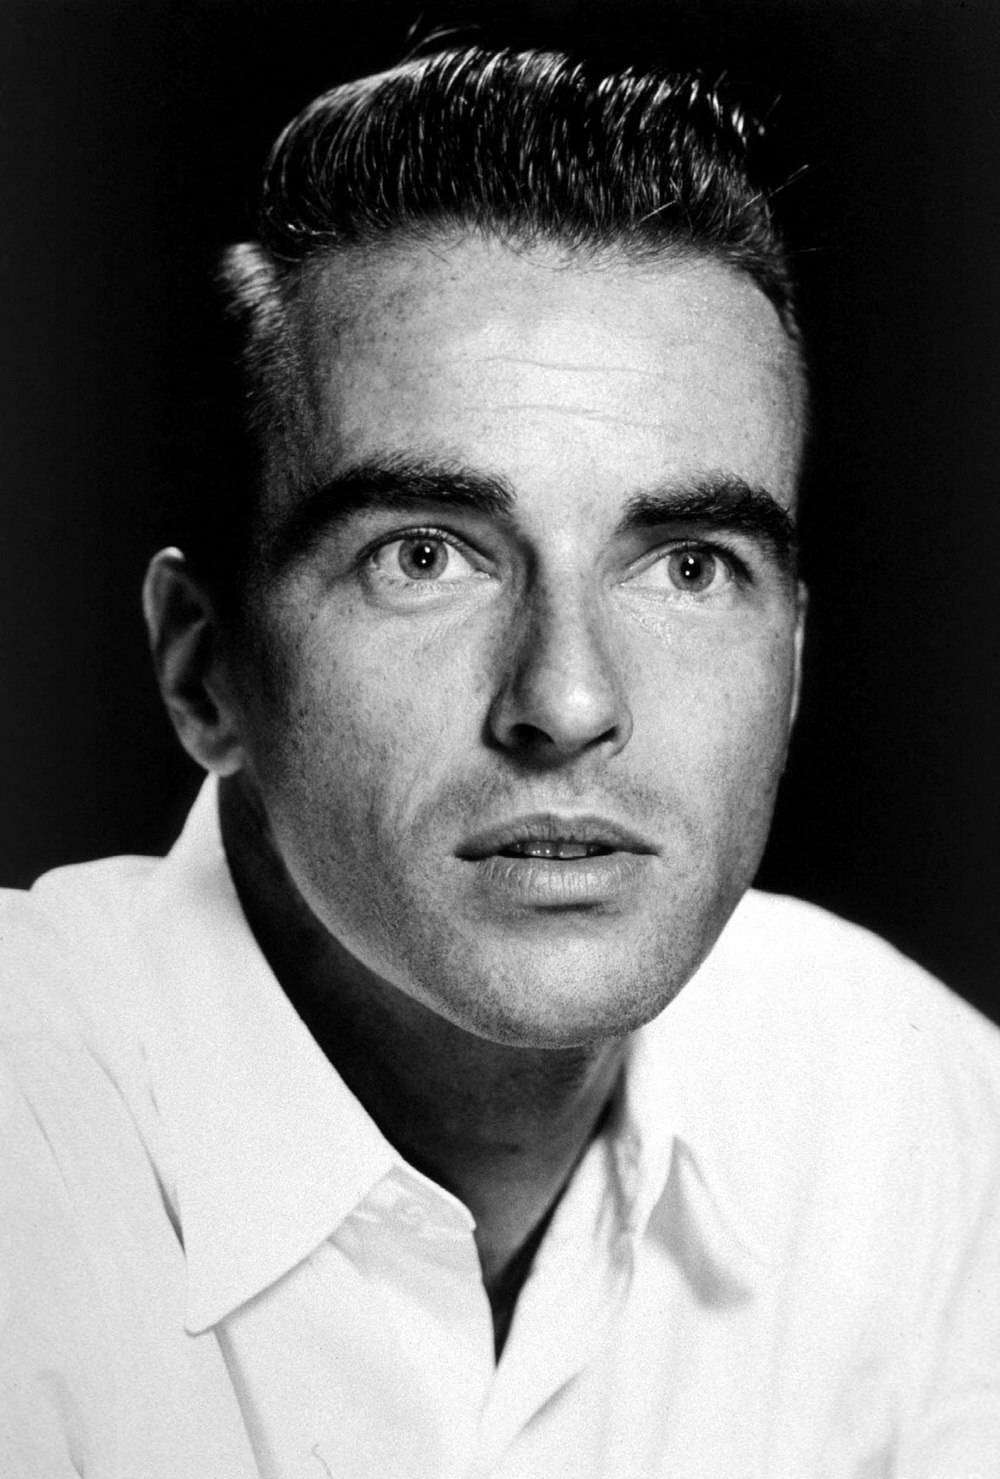 Montgomery Clift Photo 2 Of 15 Pics, Wallpaper  Photo. Chateau De Salettes Hotel. Suzhou Weisheng Lyric Hotel. Jumeirah Beach Hotel. Sheraton Shenyang Lido Hotel. Casa Di Kuppie. Highland Haven Creekside Inn Bed And Breakfast. Ledson Hotel And Centre Du Vin. Point Conselve Hotel